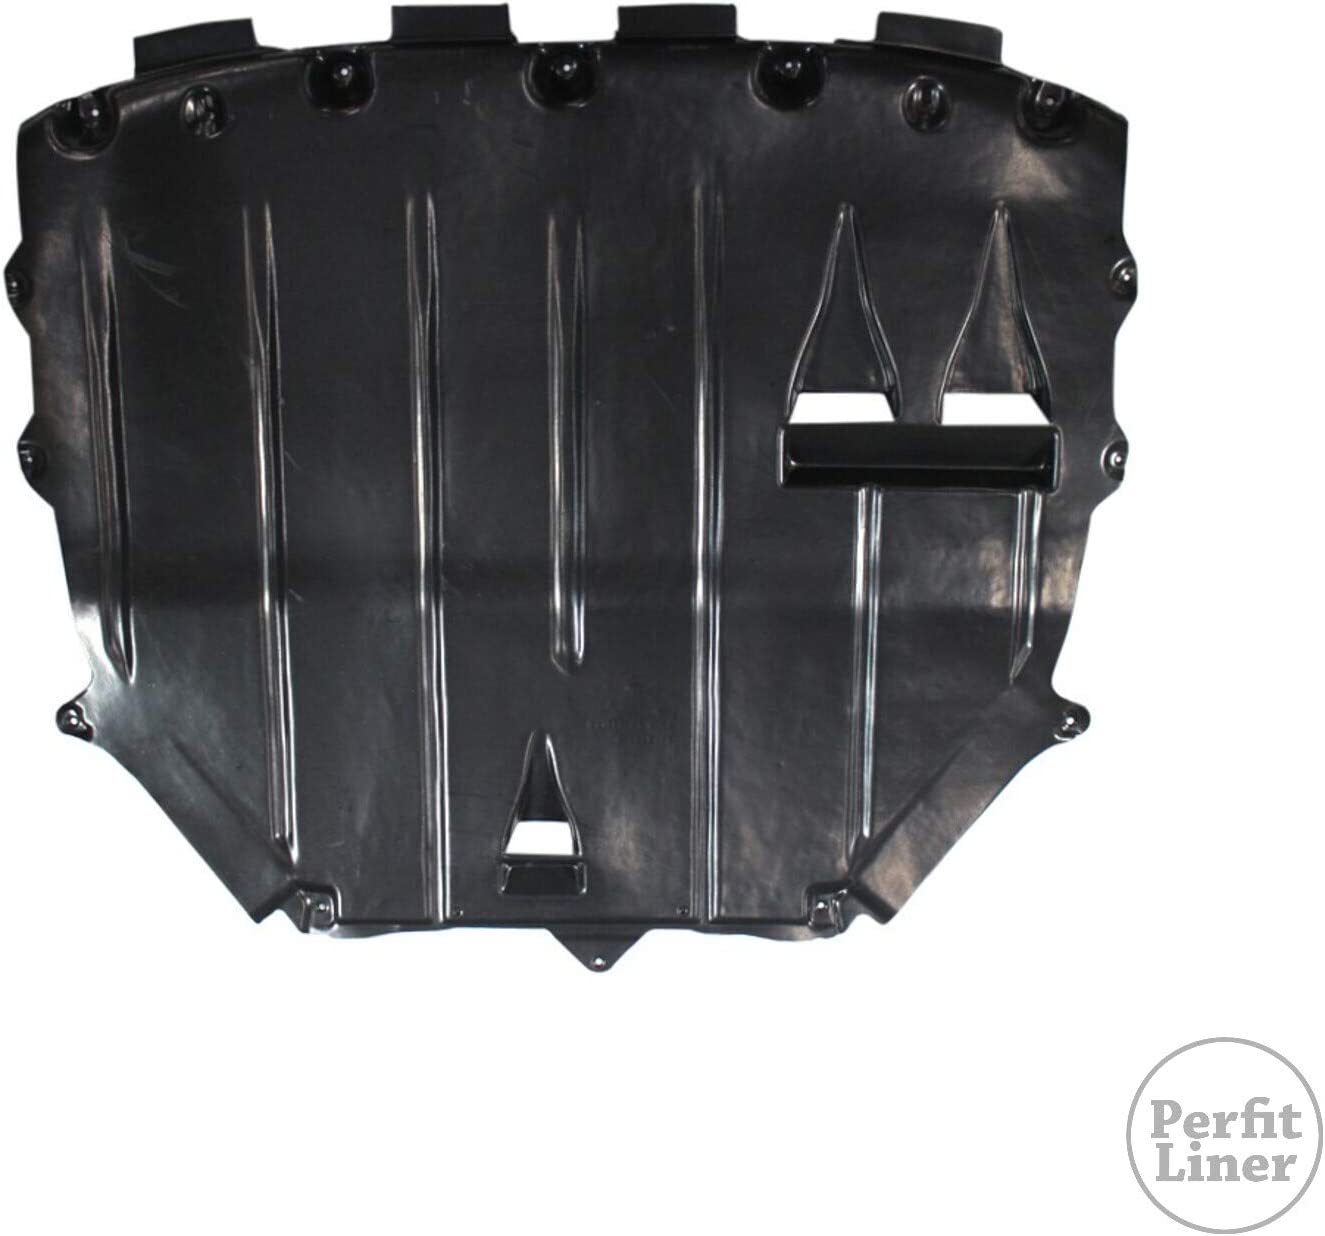 Perfit Liner New Replacement Parts Front Lower Engine Cover For Audi TT Quattro TT Fits AU1228116 8J8825237A